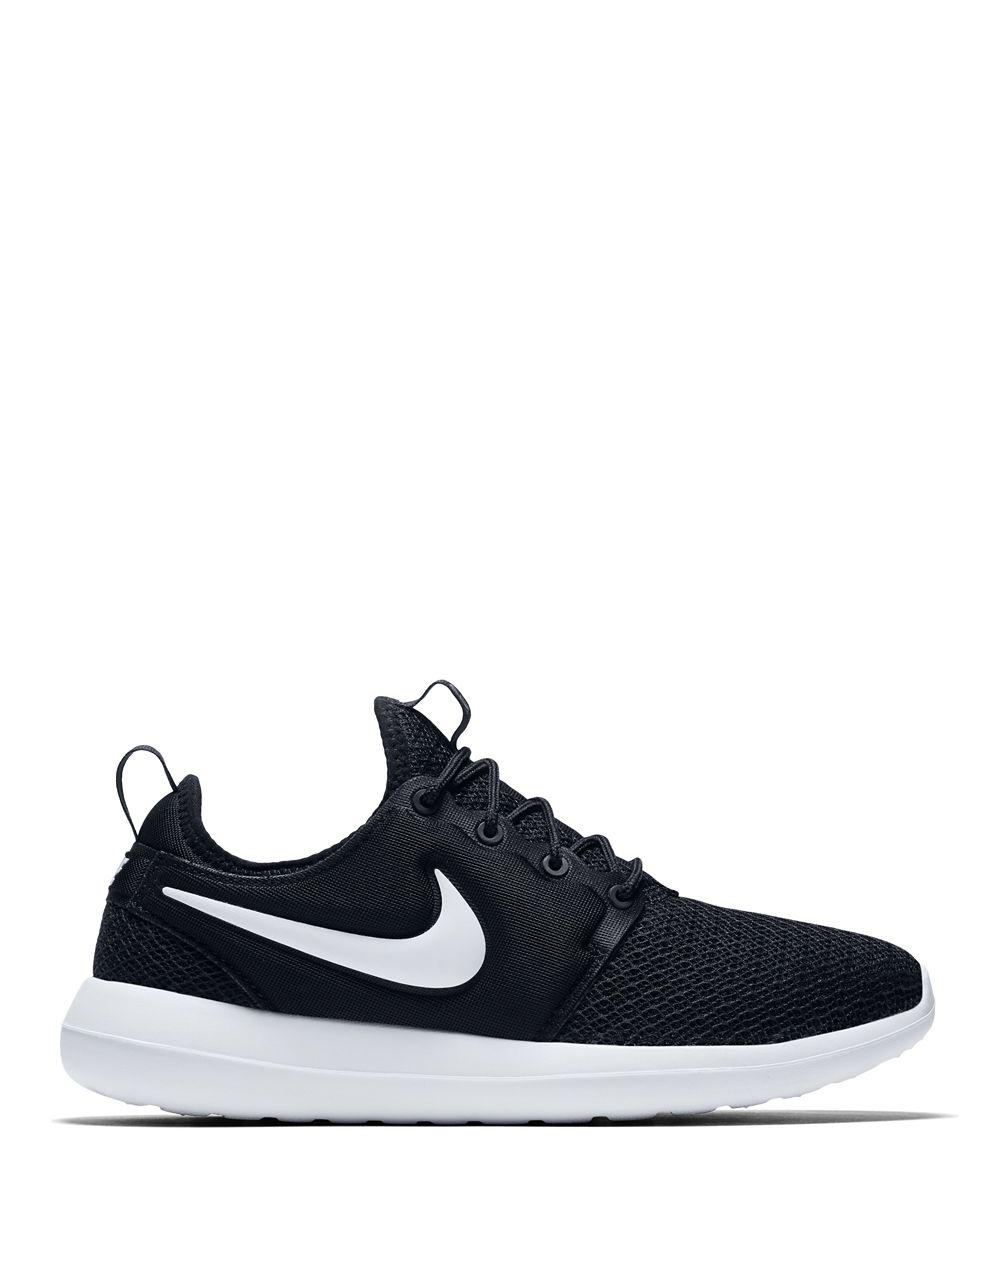 size 40 45787 8dc8e Lyst - Nike Roshe Two Lace-up Sneakers in Black